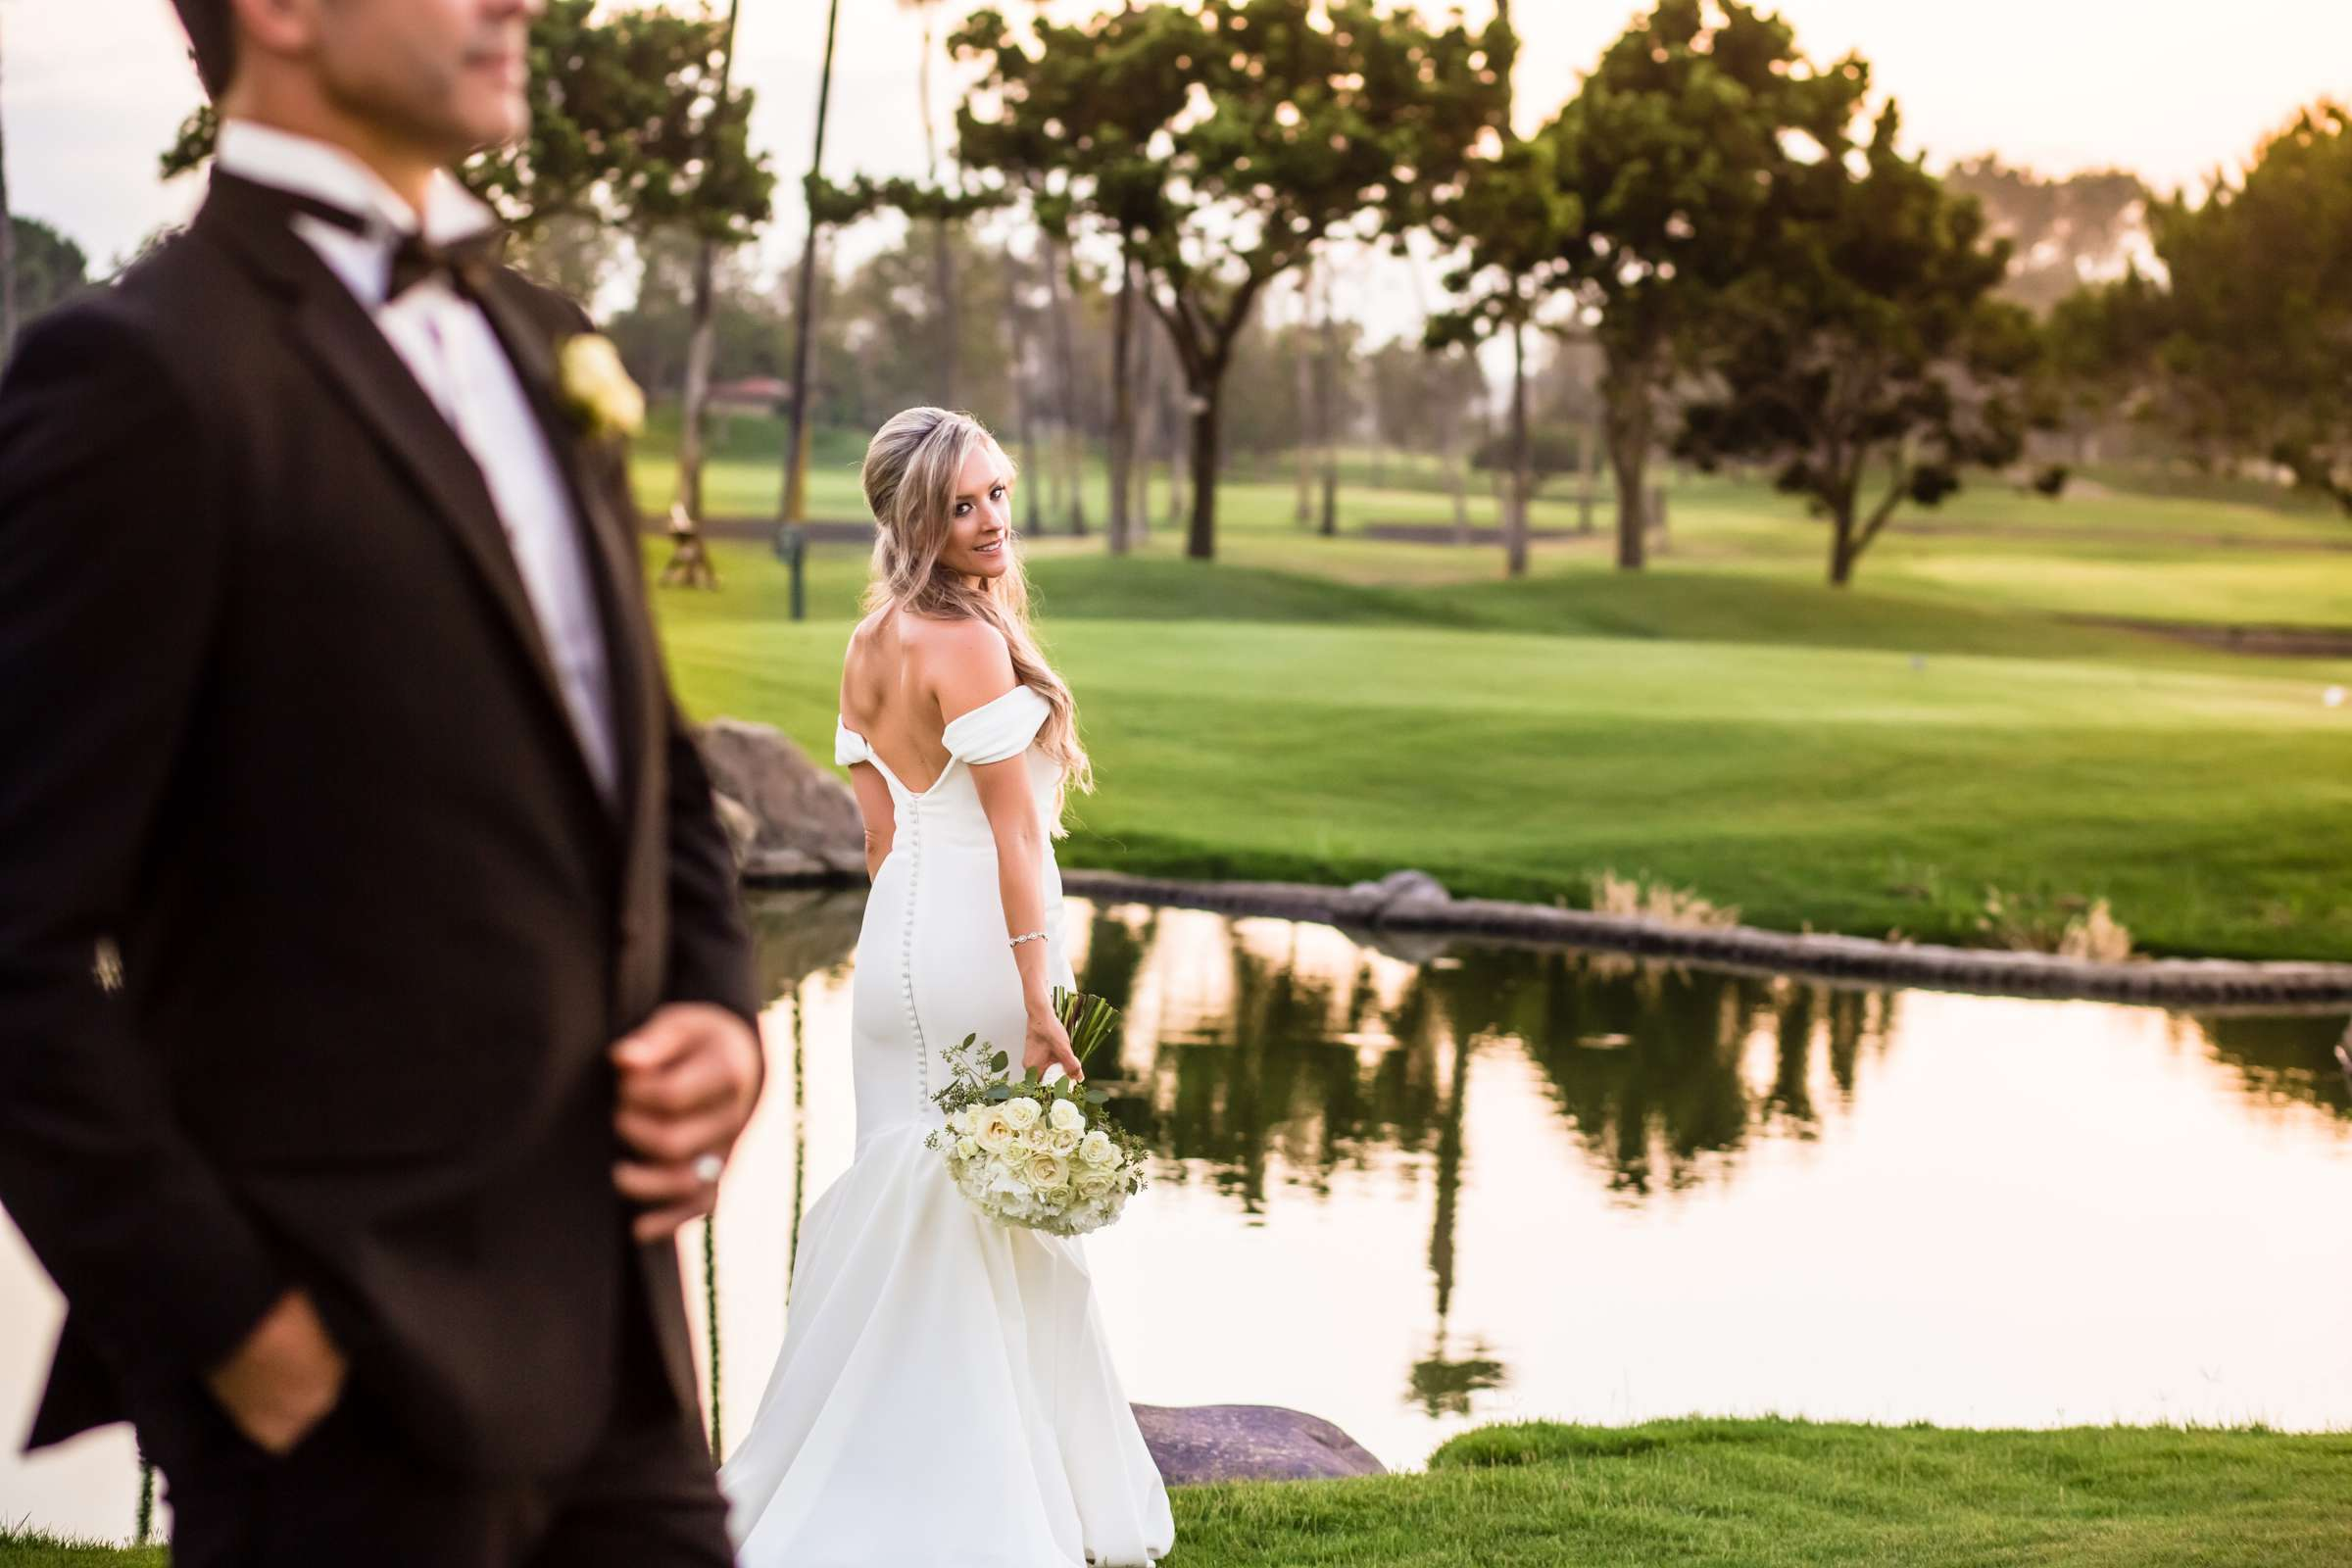 Fairbanks Ranch Country Club Wedding coordinated by Blissful Weddings & Co., Kristina and Allan Wedding Photo #481658 by True Photography